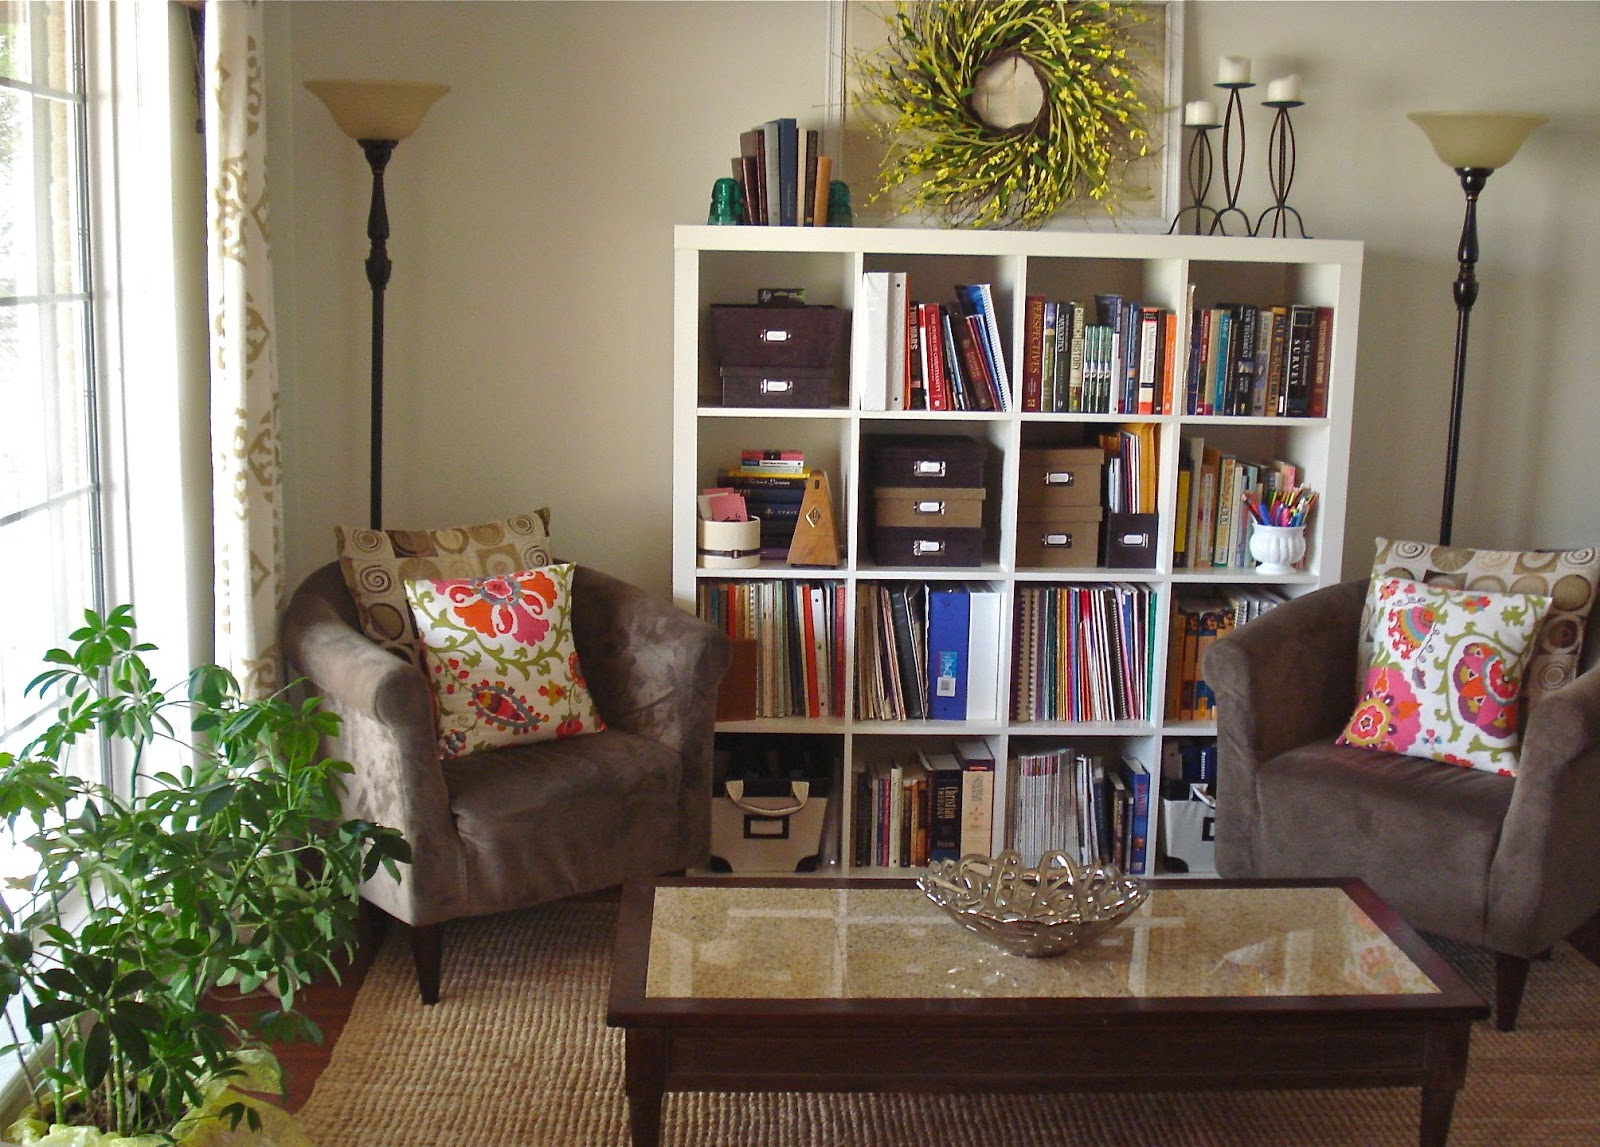 Living Room And Kitchen Tour Emma Marie Designs